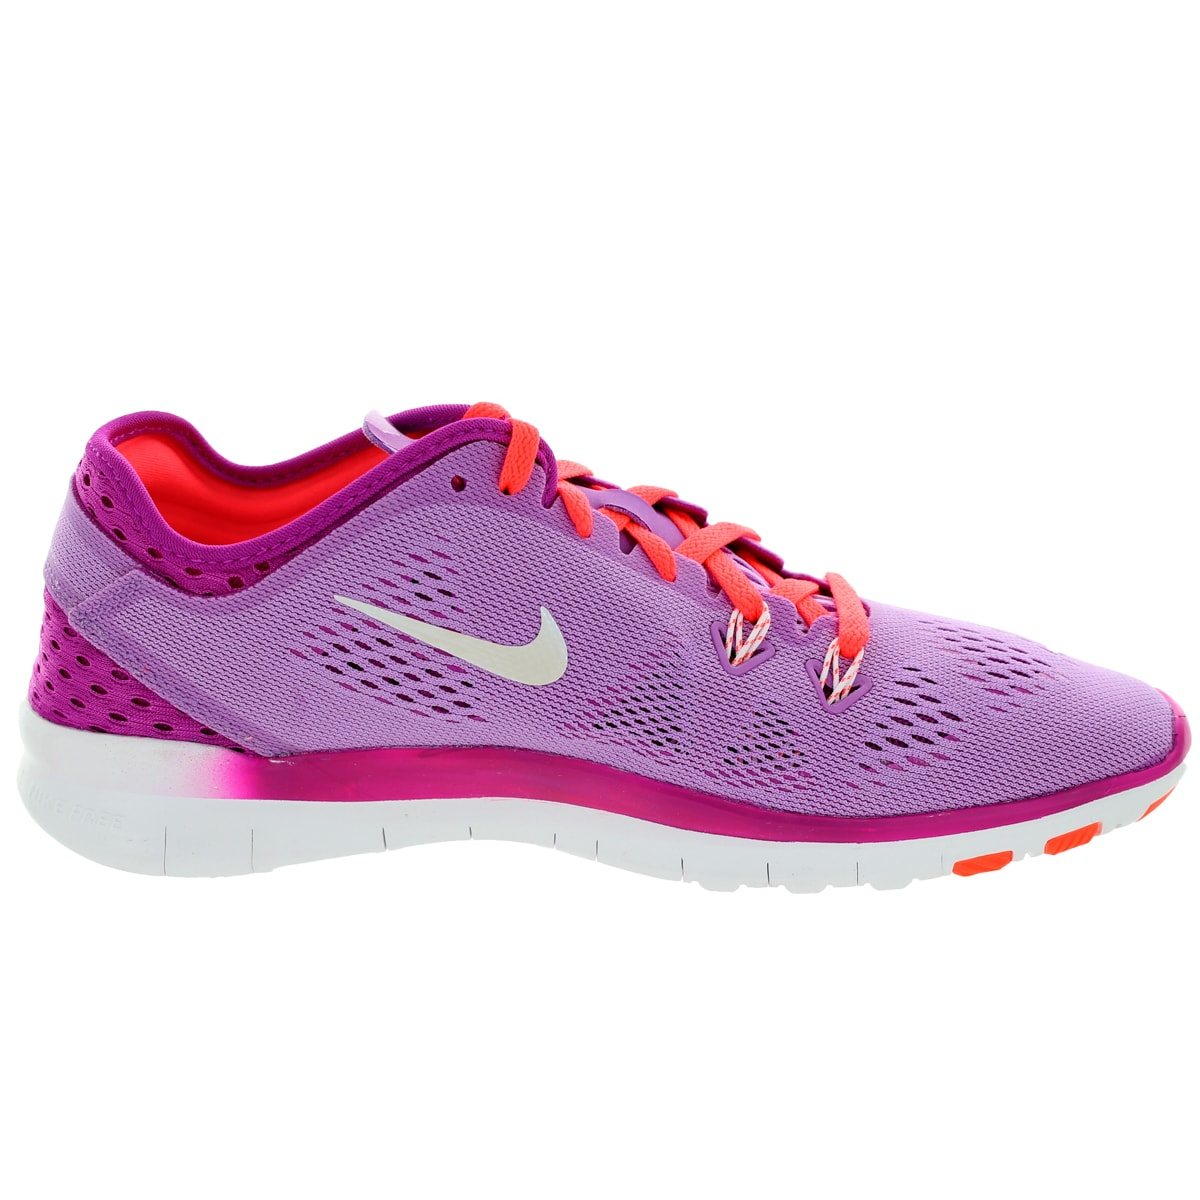 ec93ed047063 Shop Nike Women s Free 5.0 Tr Fit 5 Brthe  White Ht Lv Training Shoe - Free  Shipping Today - Overstock.com - 12329140